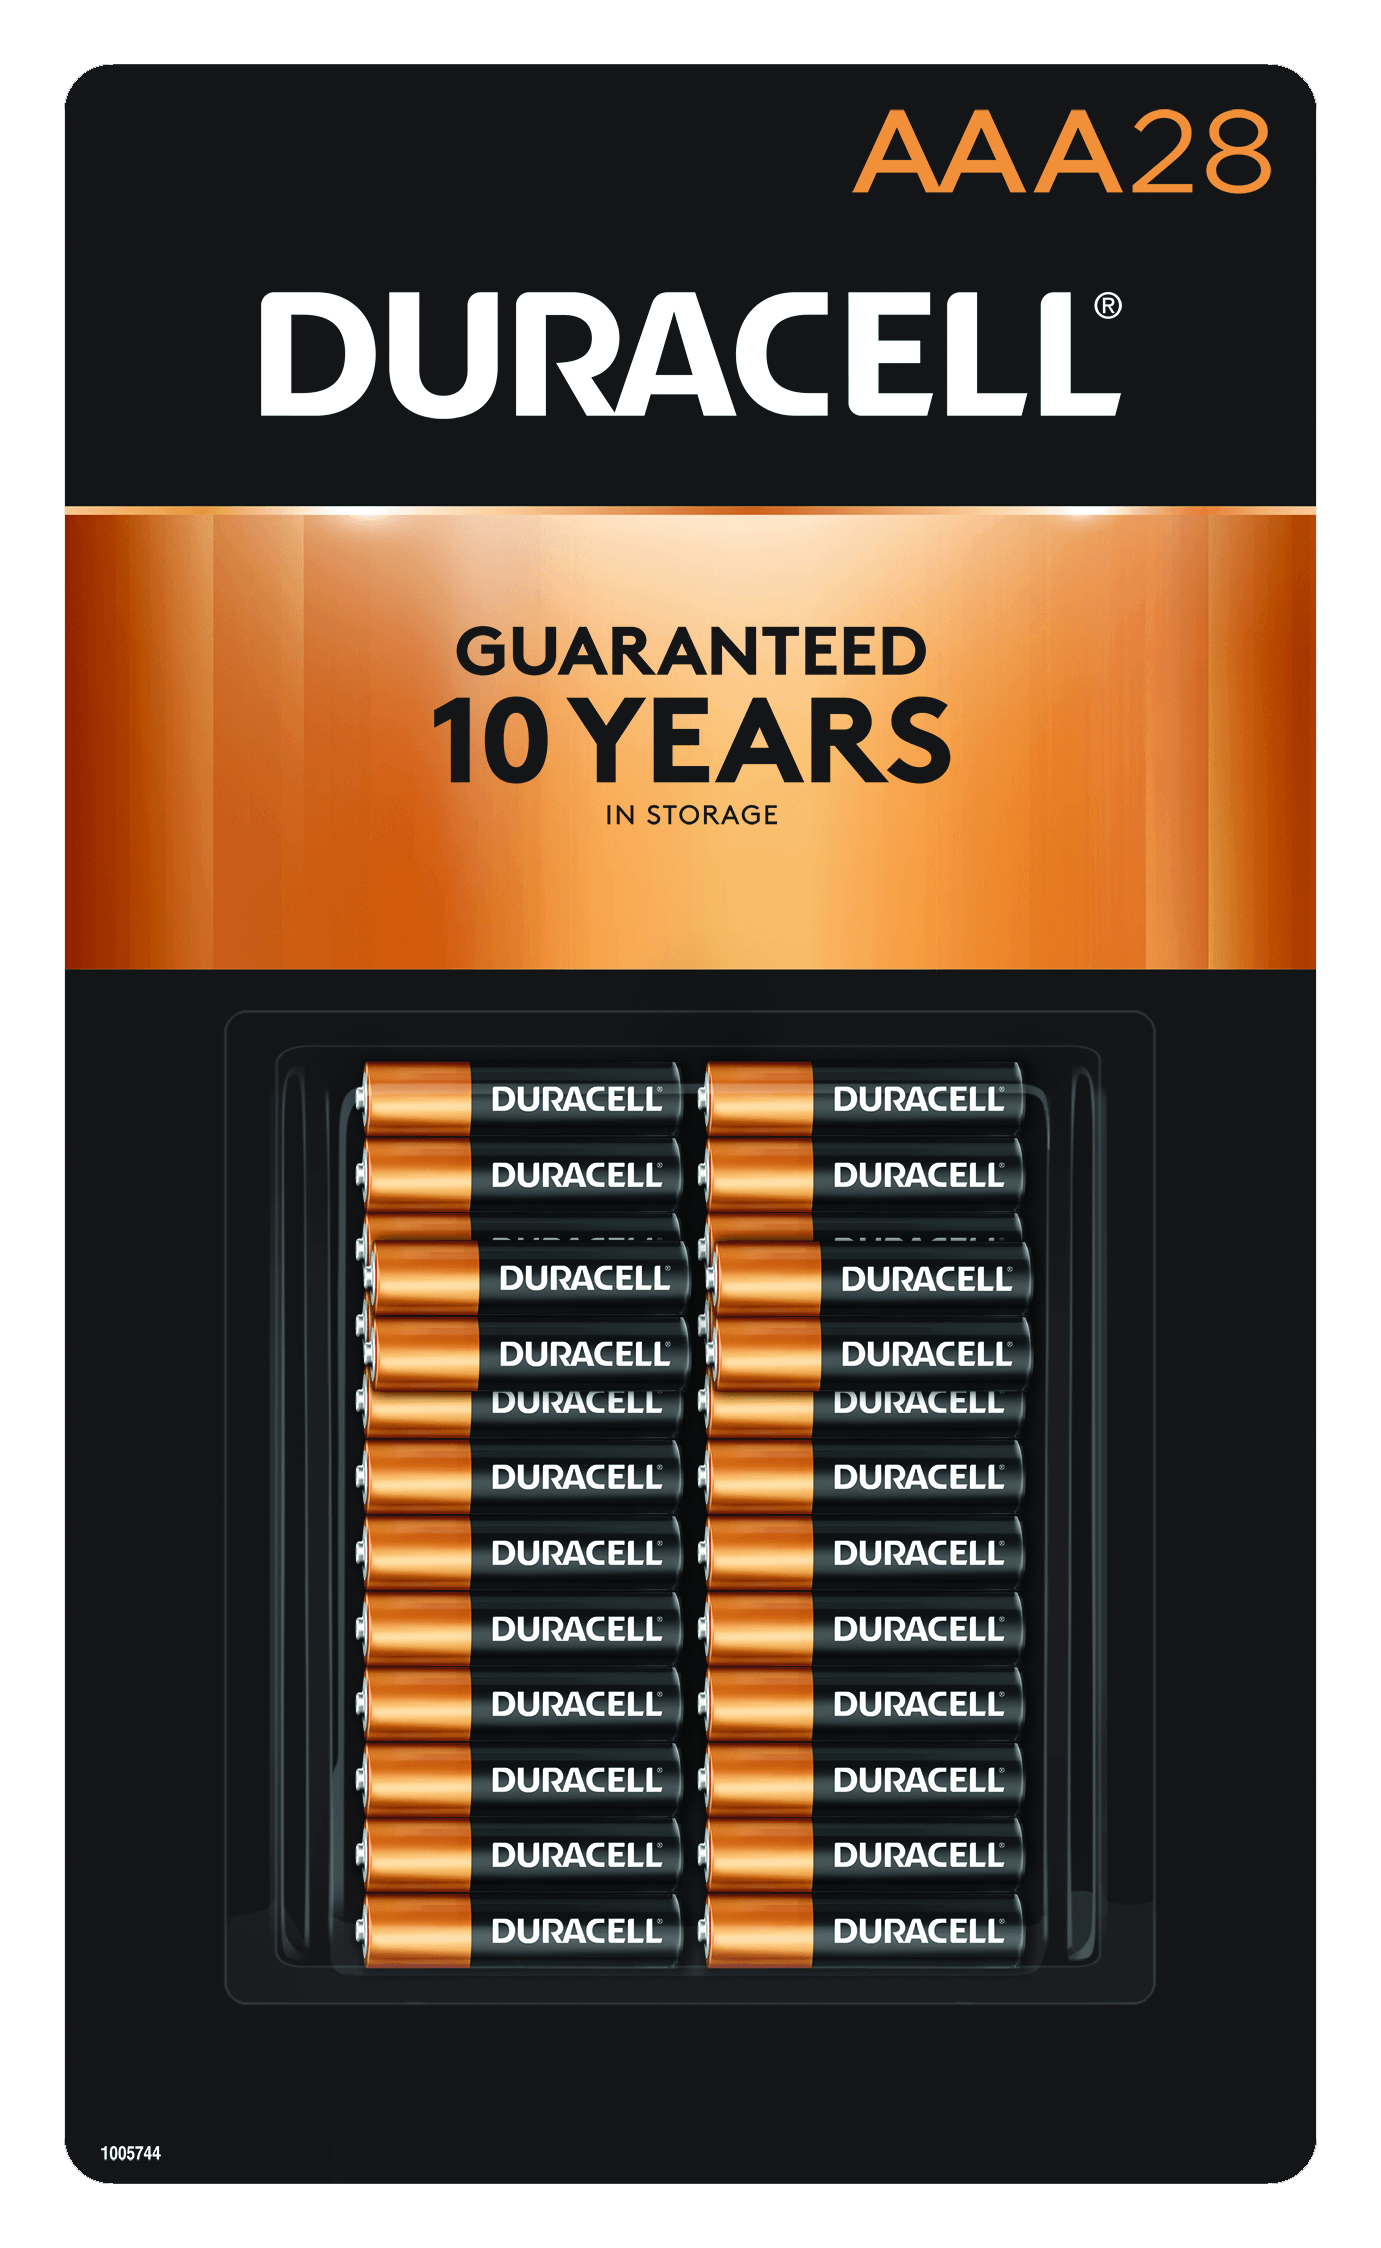 Duracell Car Battery Review >> Duracell Coppertop Aaa Batteries 28 Count